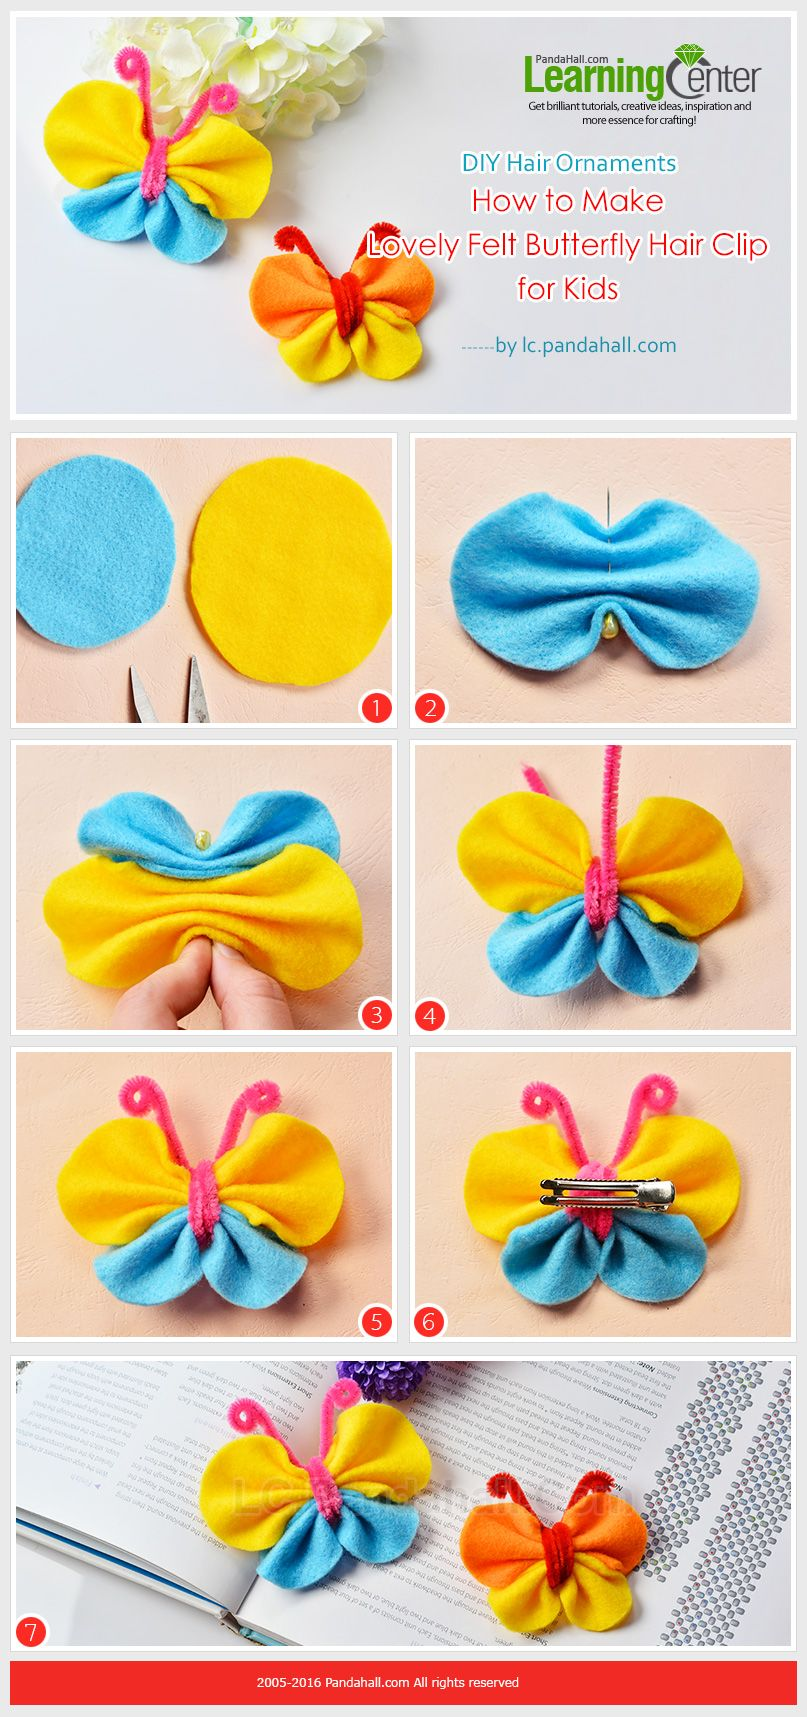 DIY Hair Ornaments - How to Make Lovely Felt Butterfly Hair Clip for Kids  from LC.Pandahall.com 6b119d6a32